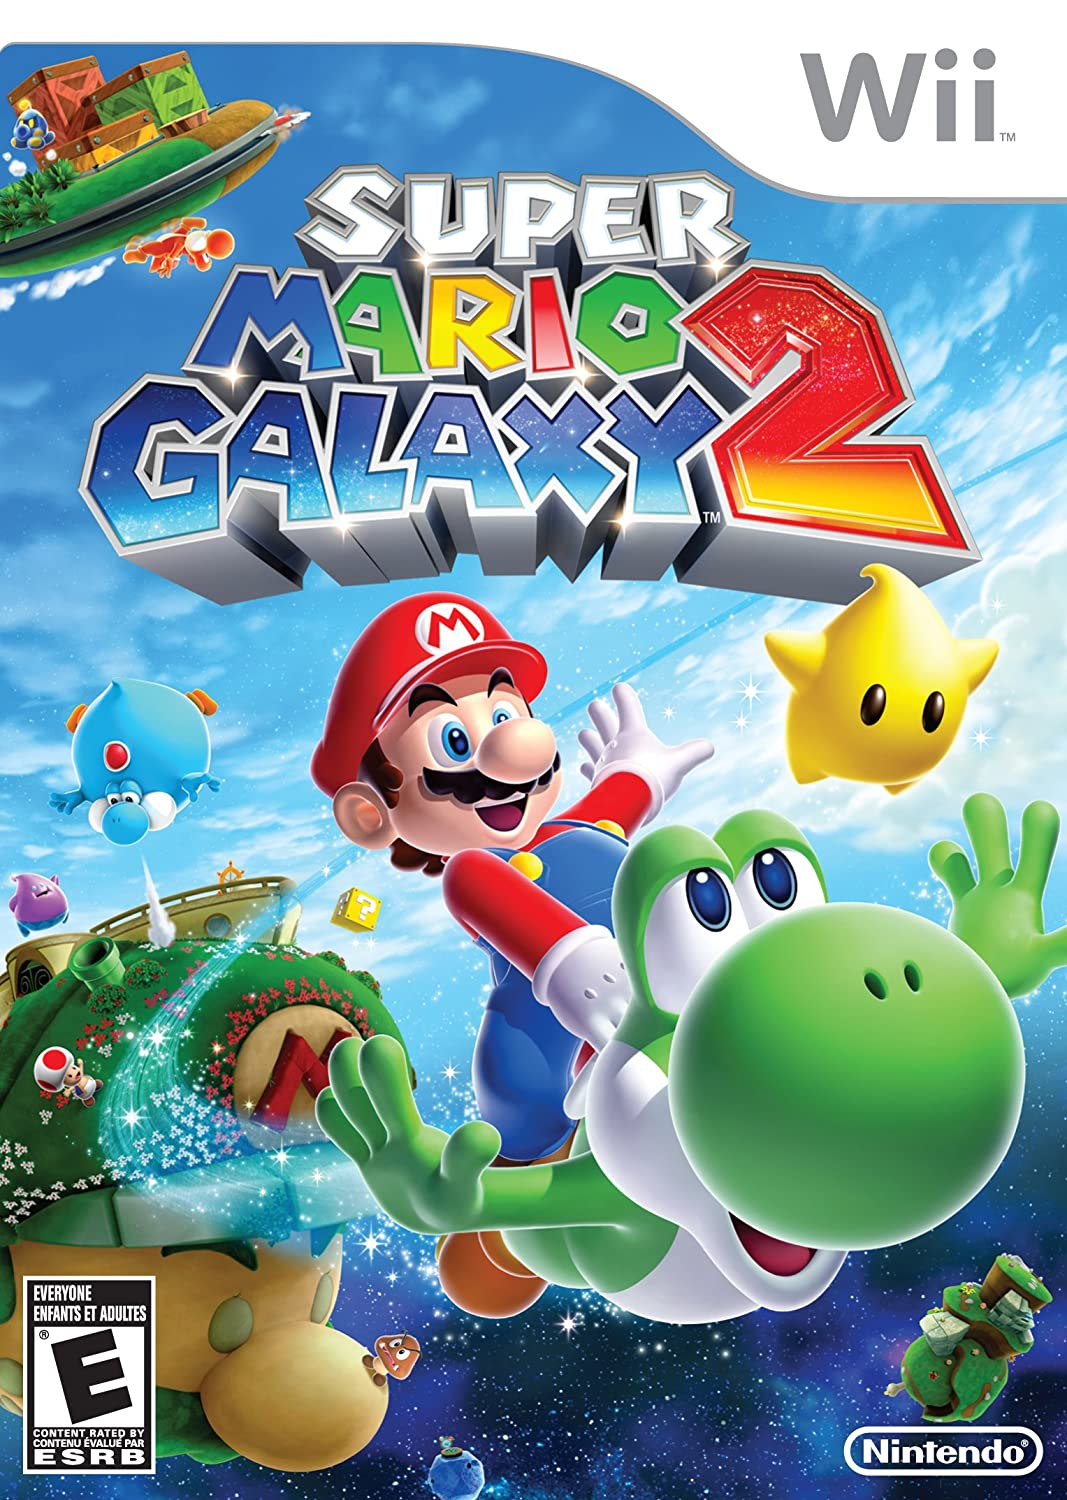 Top 15 Best Wii Games For Kids (2020 Reviews & Buying Guide) 5